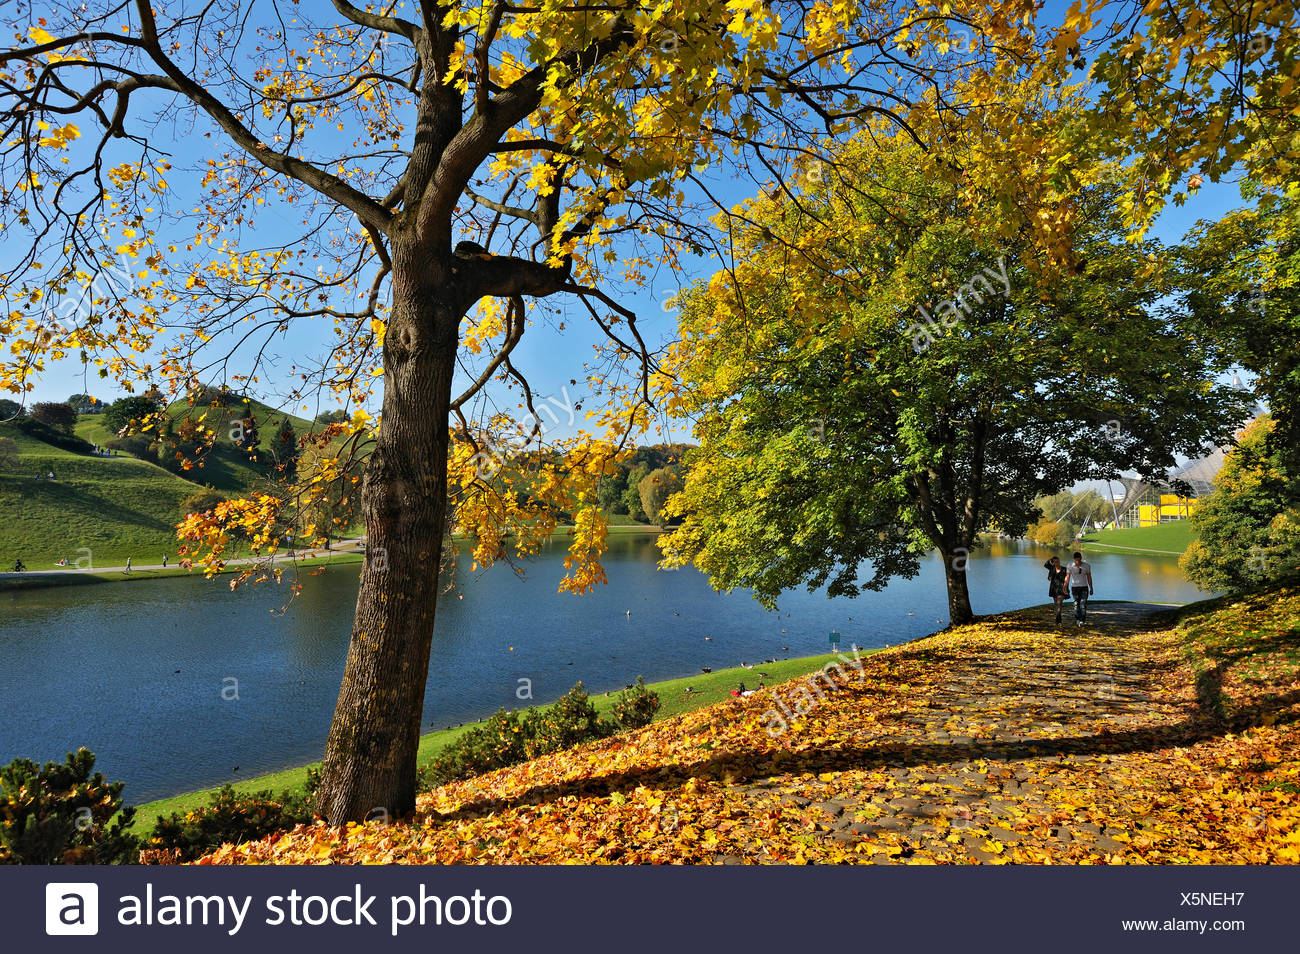 Olympic Park with autumn leaves from a Maple (Acer) and a lake, Munich, Bavaria - Stock Image